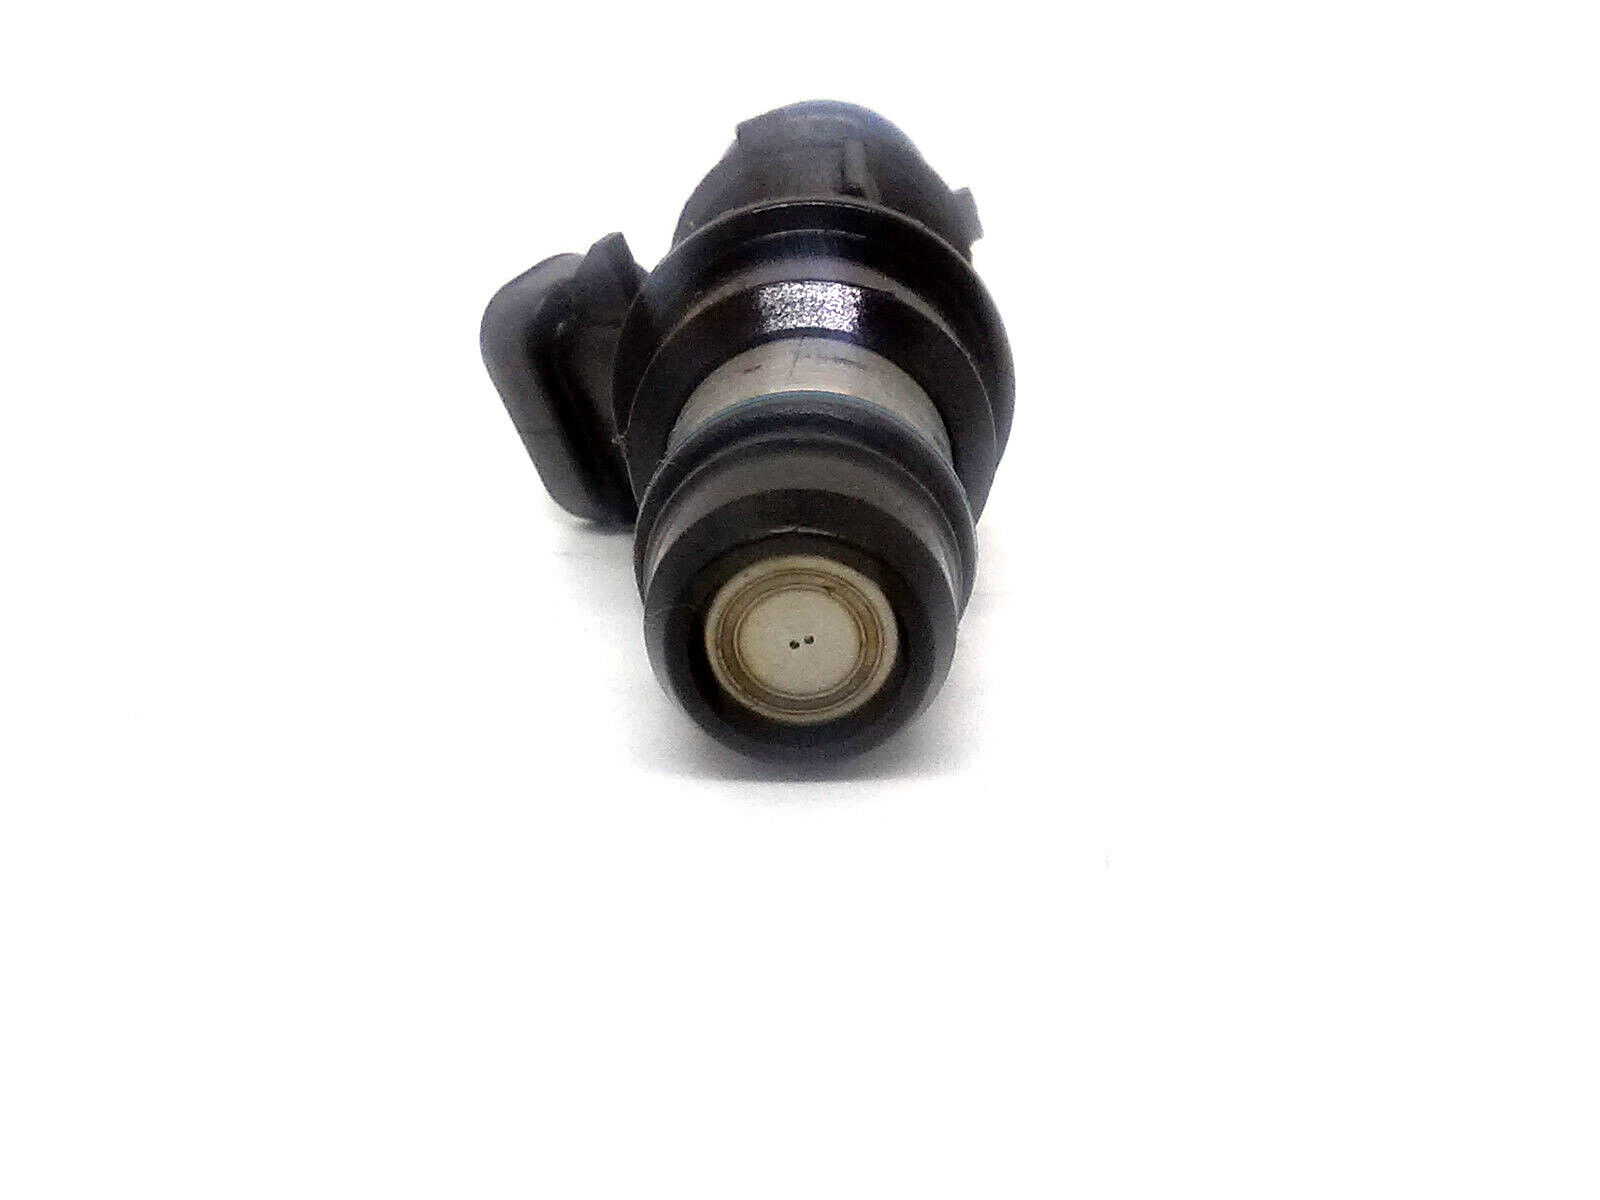 OEM Delphi CRDI Fuel Injector 1pc A6640170221 R04701 for Ssangyong Actyon Sports